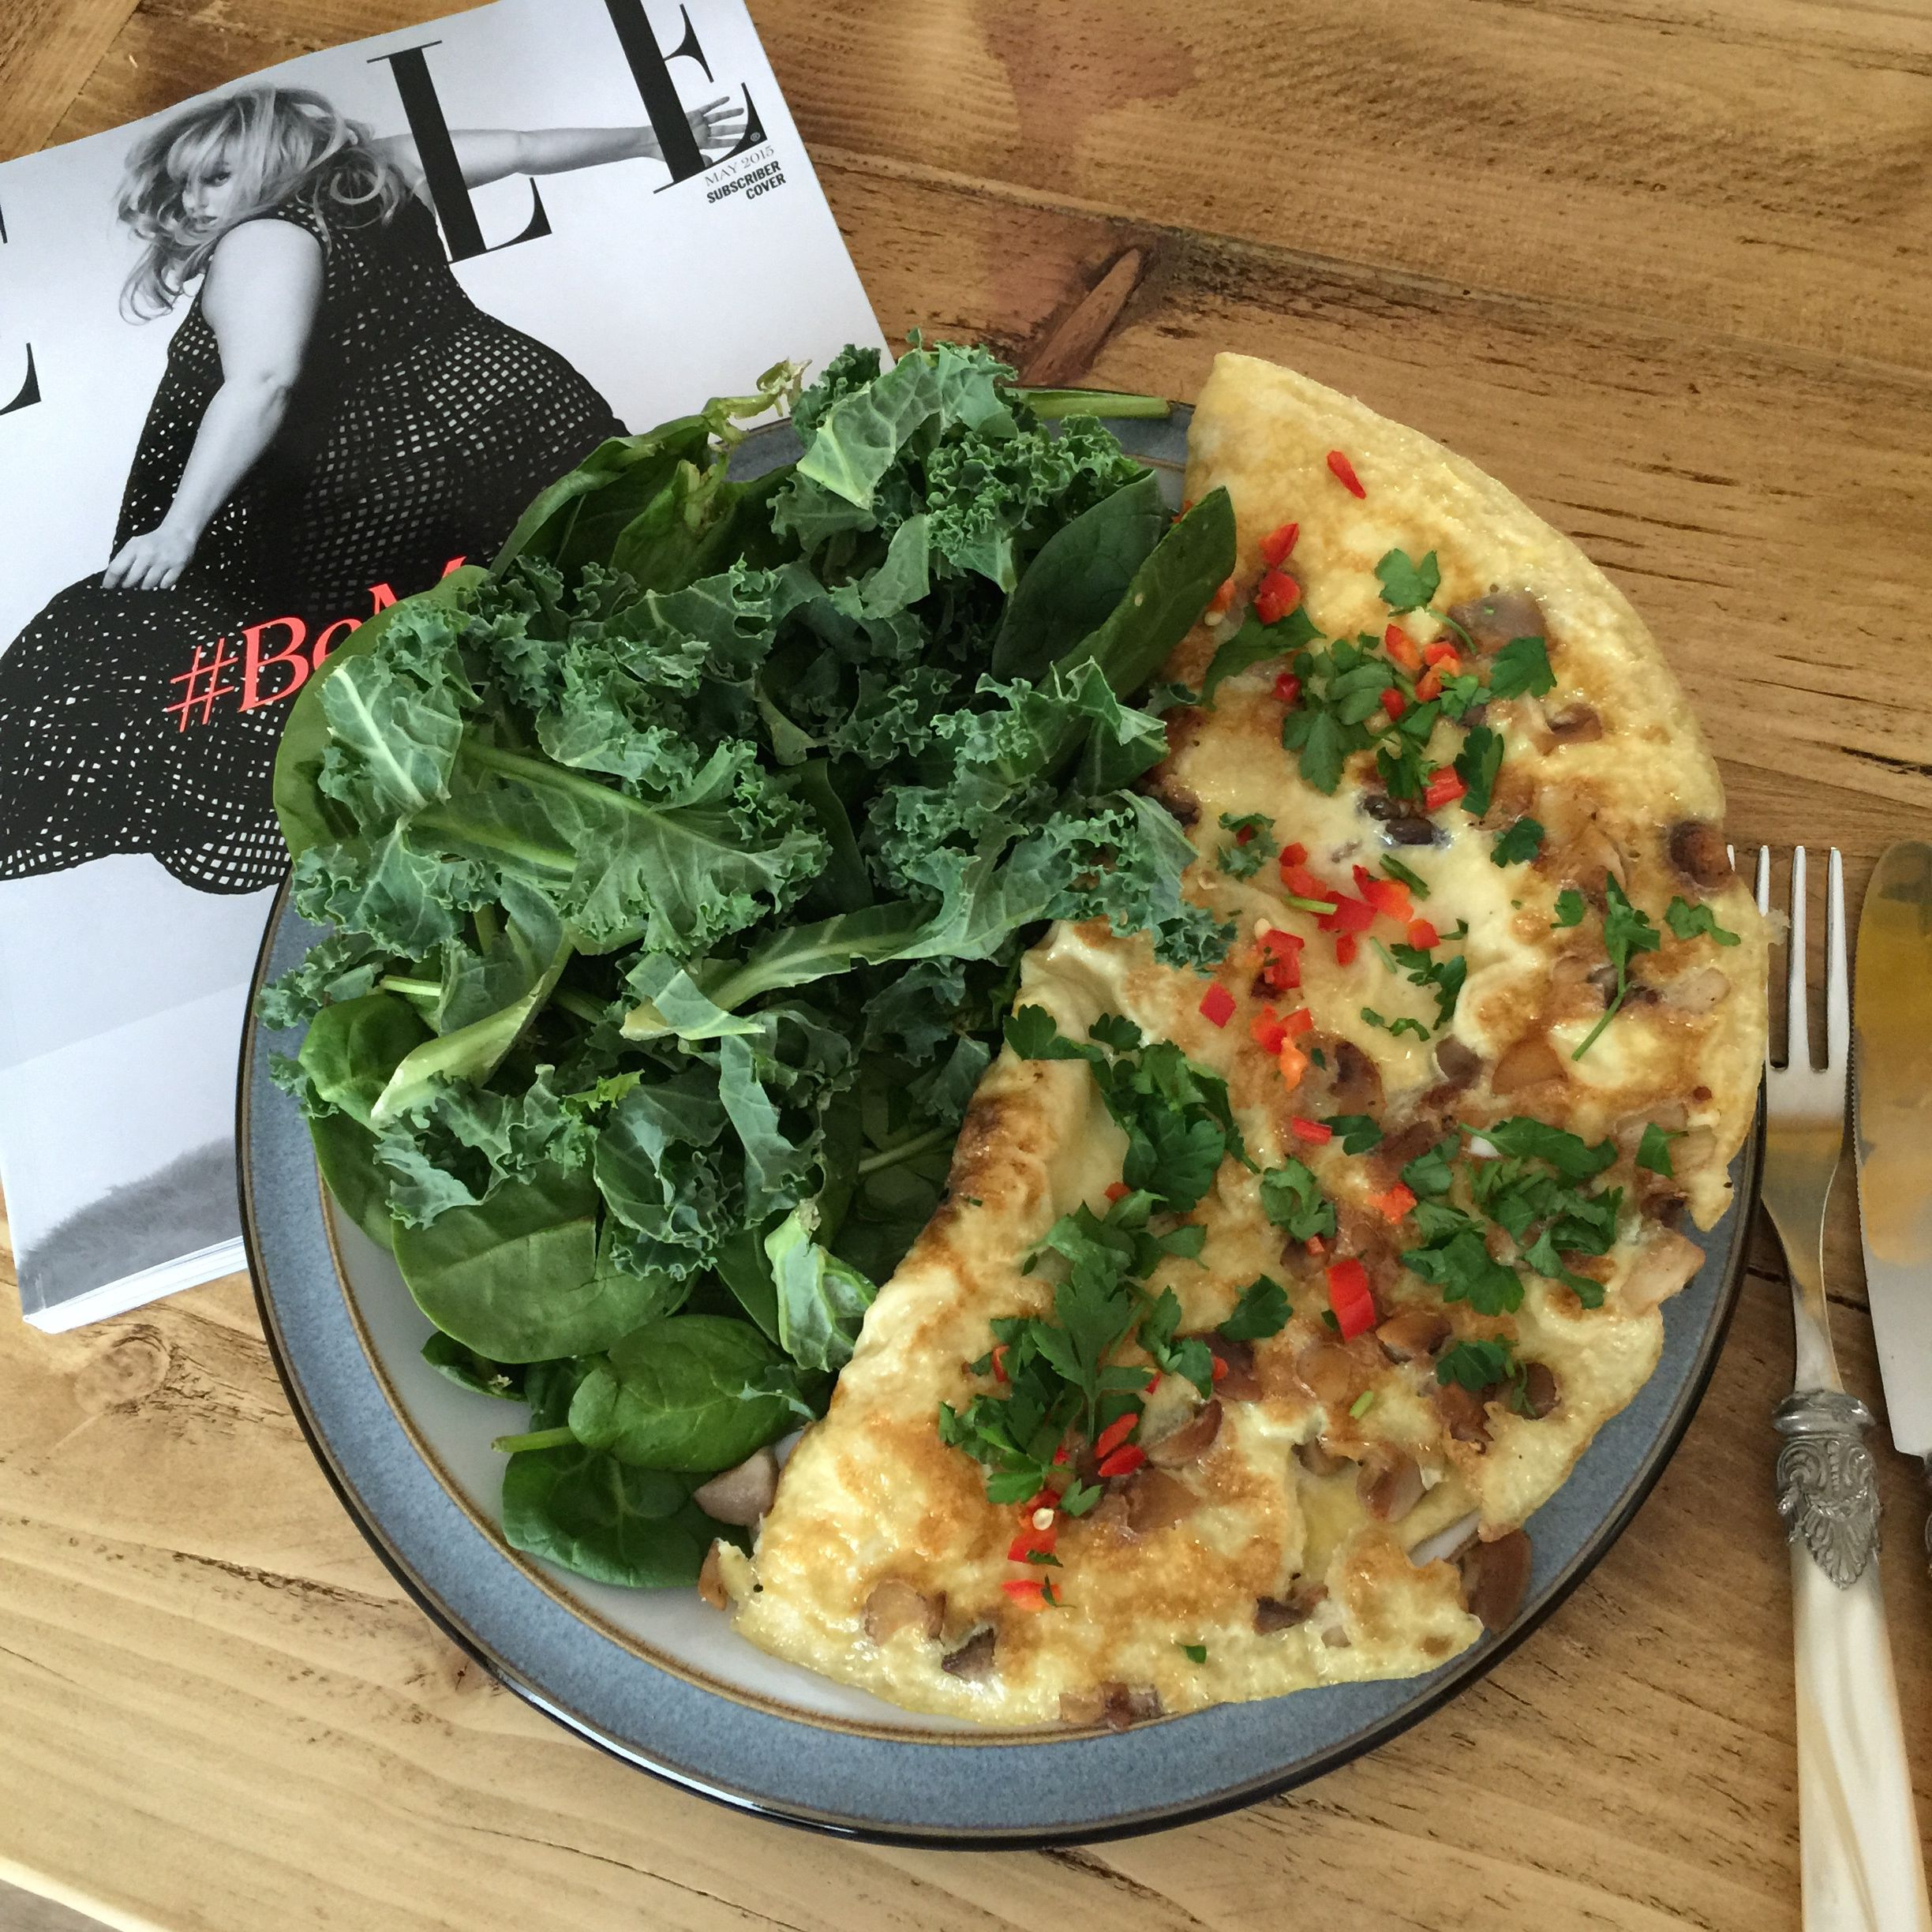 Mushroom omelette with added fresh chilli and parsley, served with raw spinach, kale and ELLE magazine. Following The Body Coach 90 Day SSS plan